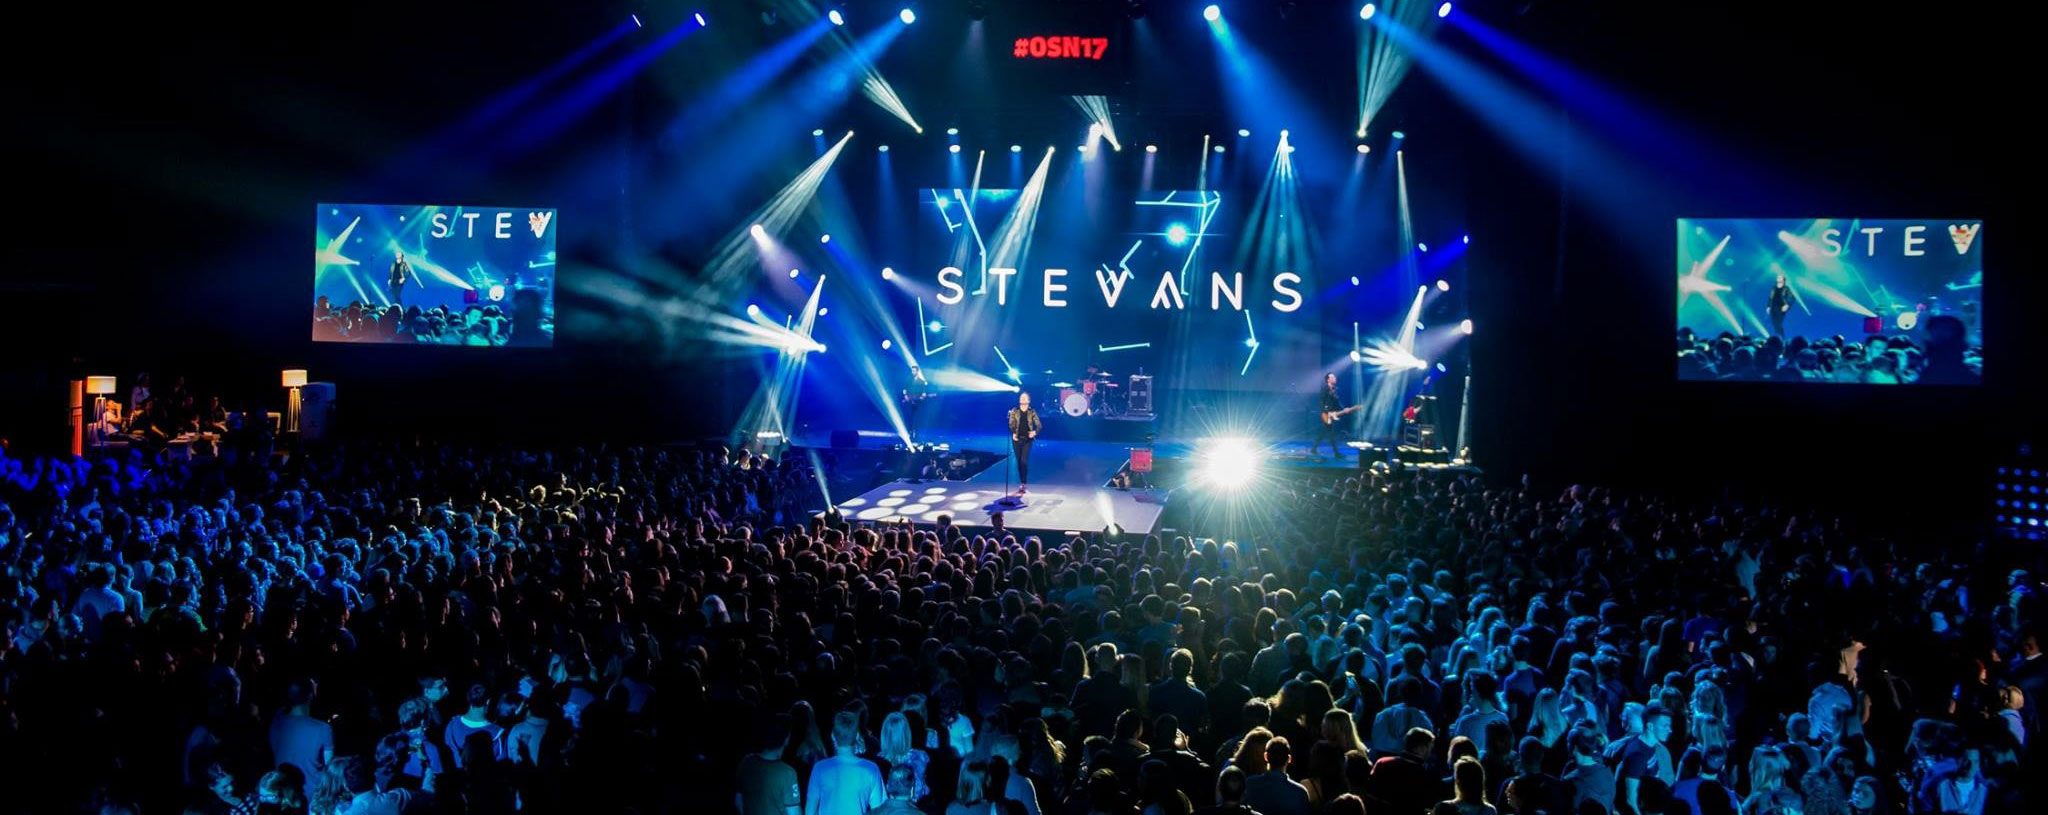 Stevans, Renaissance, swiss electro-pop band, live, on stage